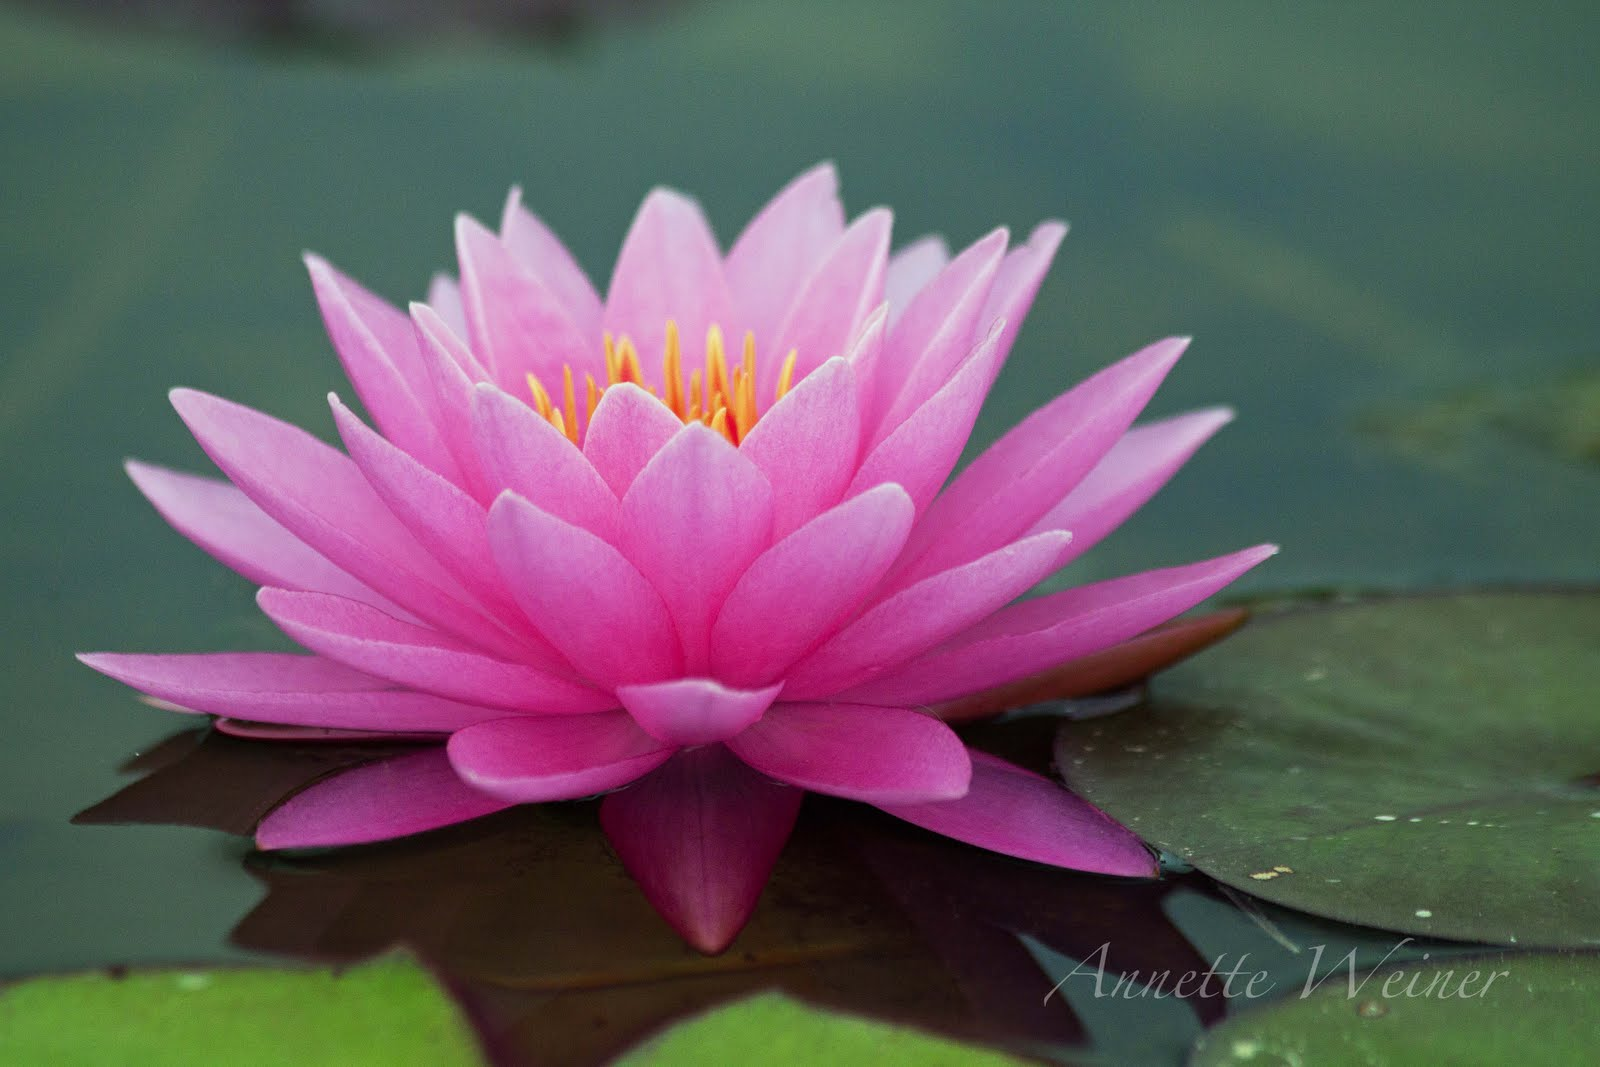 water lilies Find and save ideas about water lilies on pinterest   see more ideas about lotus flowers, lilly flower and lily pond.